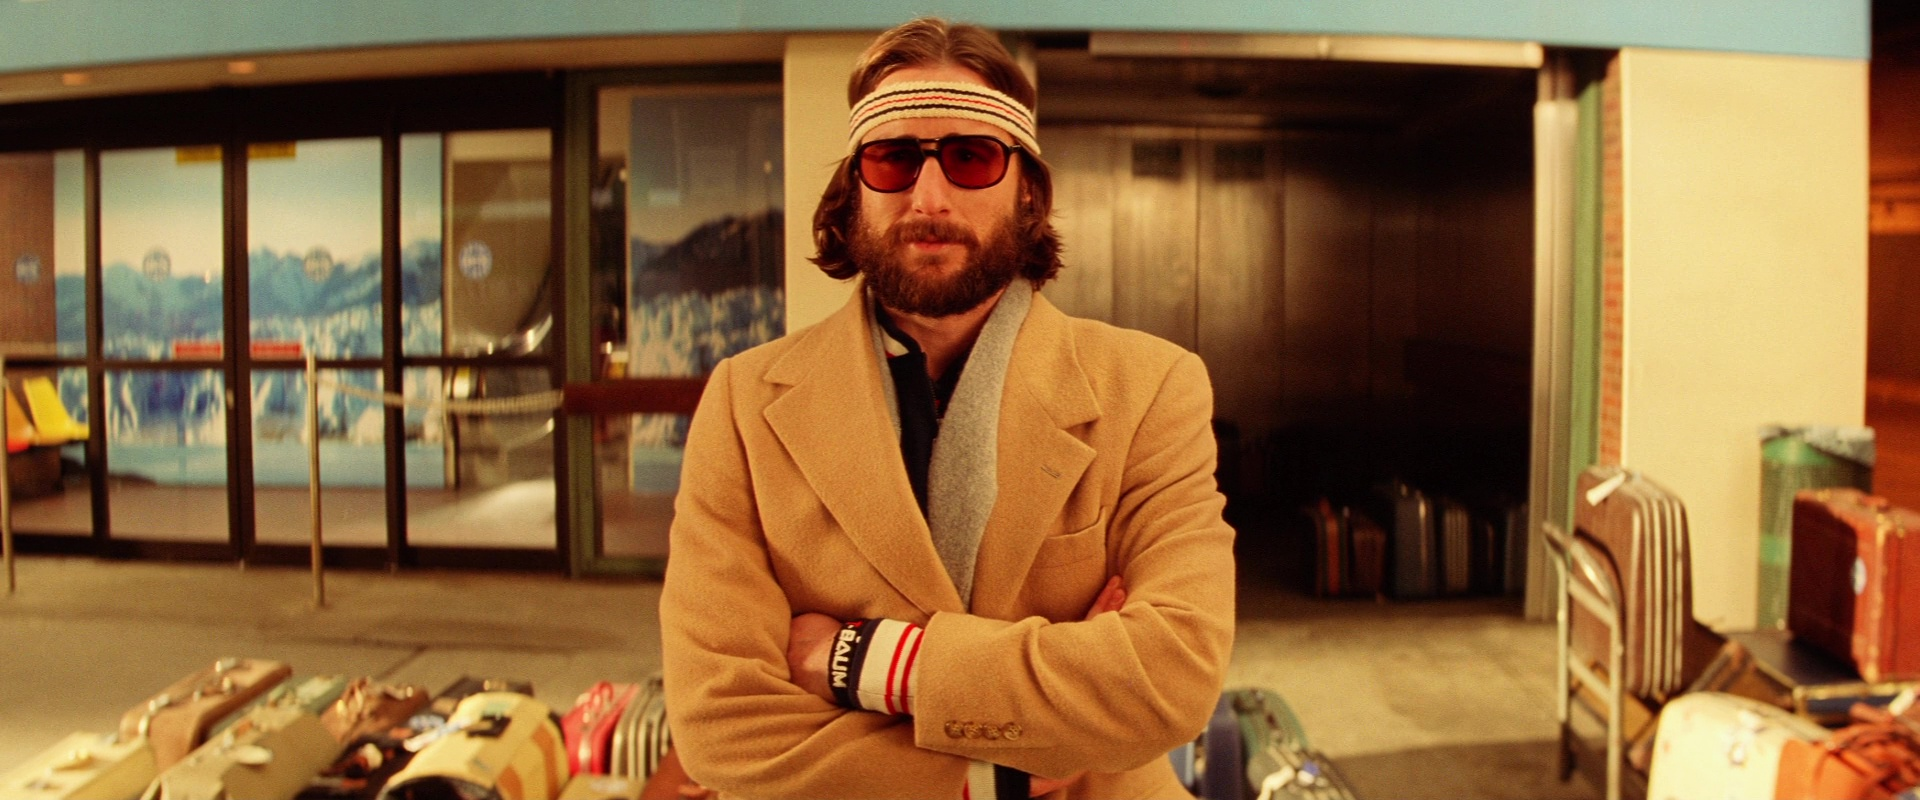 The Royal Tenenbaums 27x40 Movie Poster () by Movie Posters. $ $ 16 FREE Shipping on eligible orders. 5 out of 5 stars 1. Fila Unisex Retro Headband. by Fila. $ - $ $ 14 $ 24 FREE Shipping on eligible orders. out of 5 stars SNL Da Bears Chicago Adult Long Sleeve Sweater. by Costume Agent.